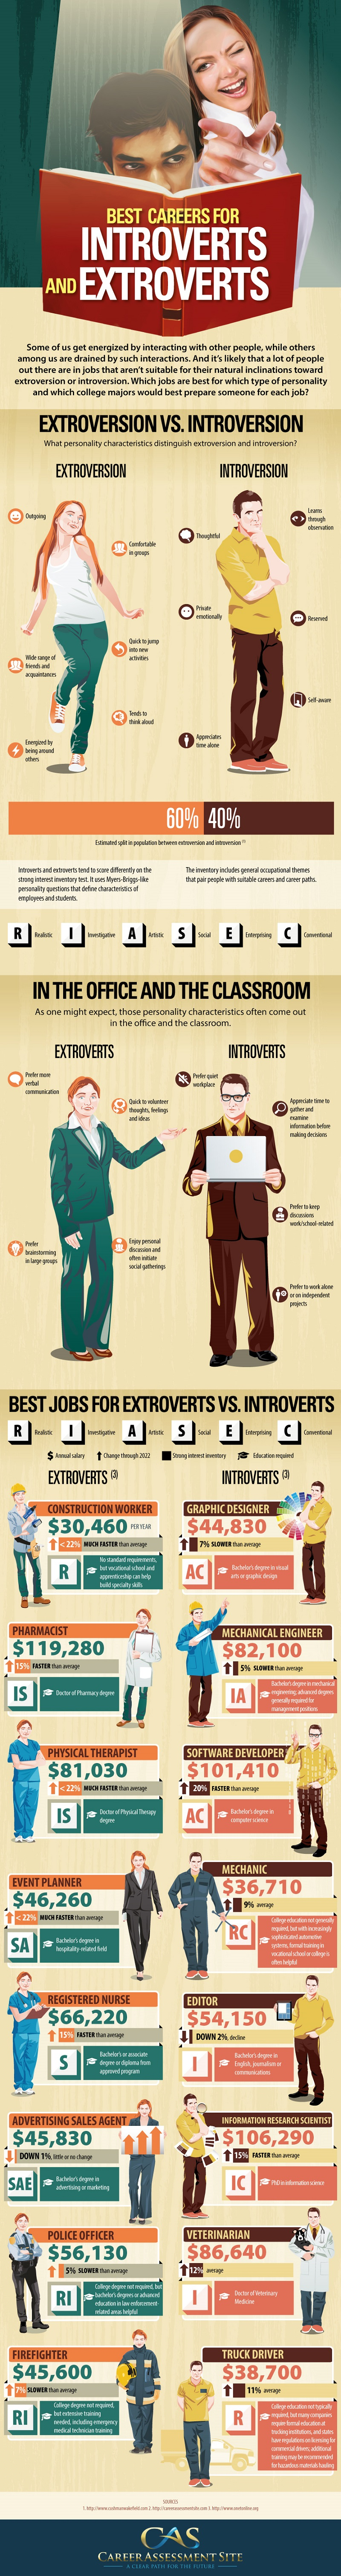 career ideas for introverts infographic introvert dear according to career assessment site here is how temperament affects us on the job and at school along career ideas and salary information for both